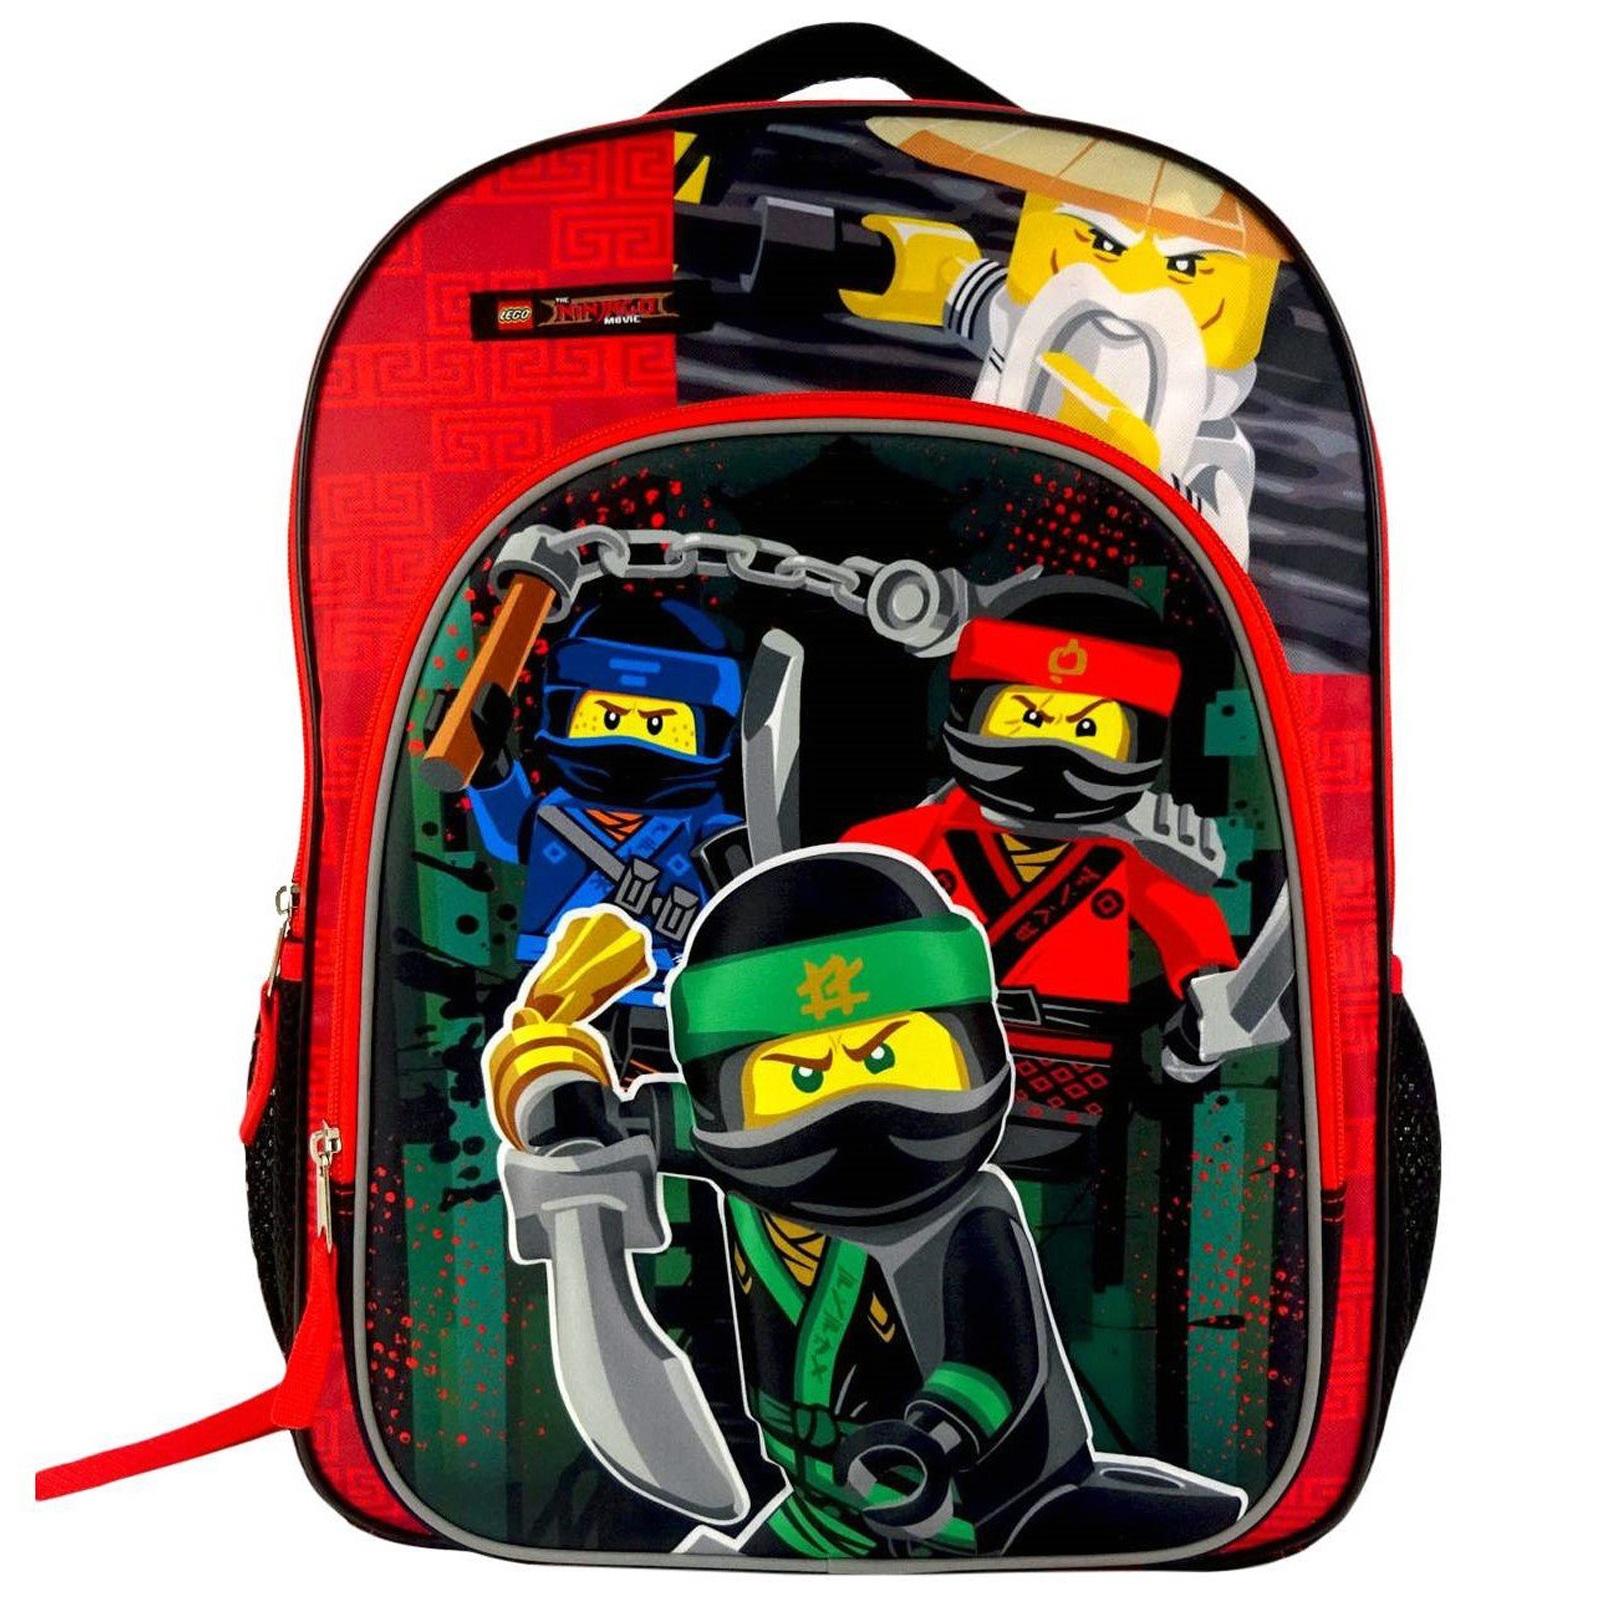 The Lego Ninjago Movie Kids Backpack for School and Travel